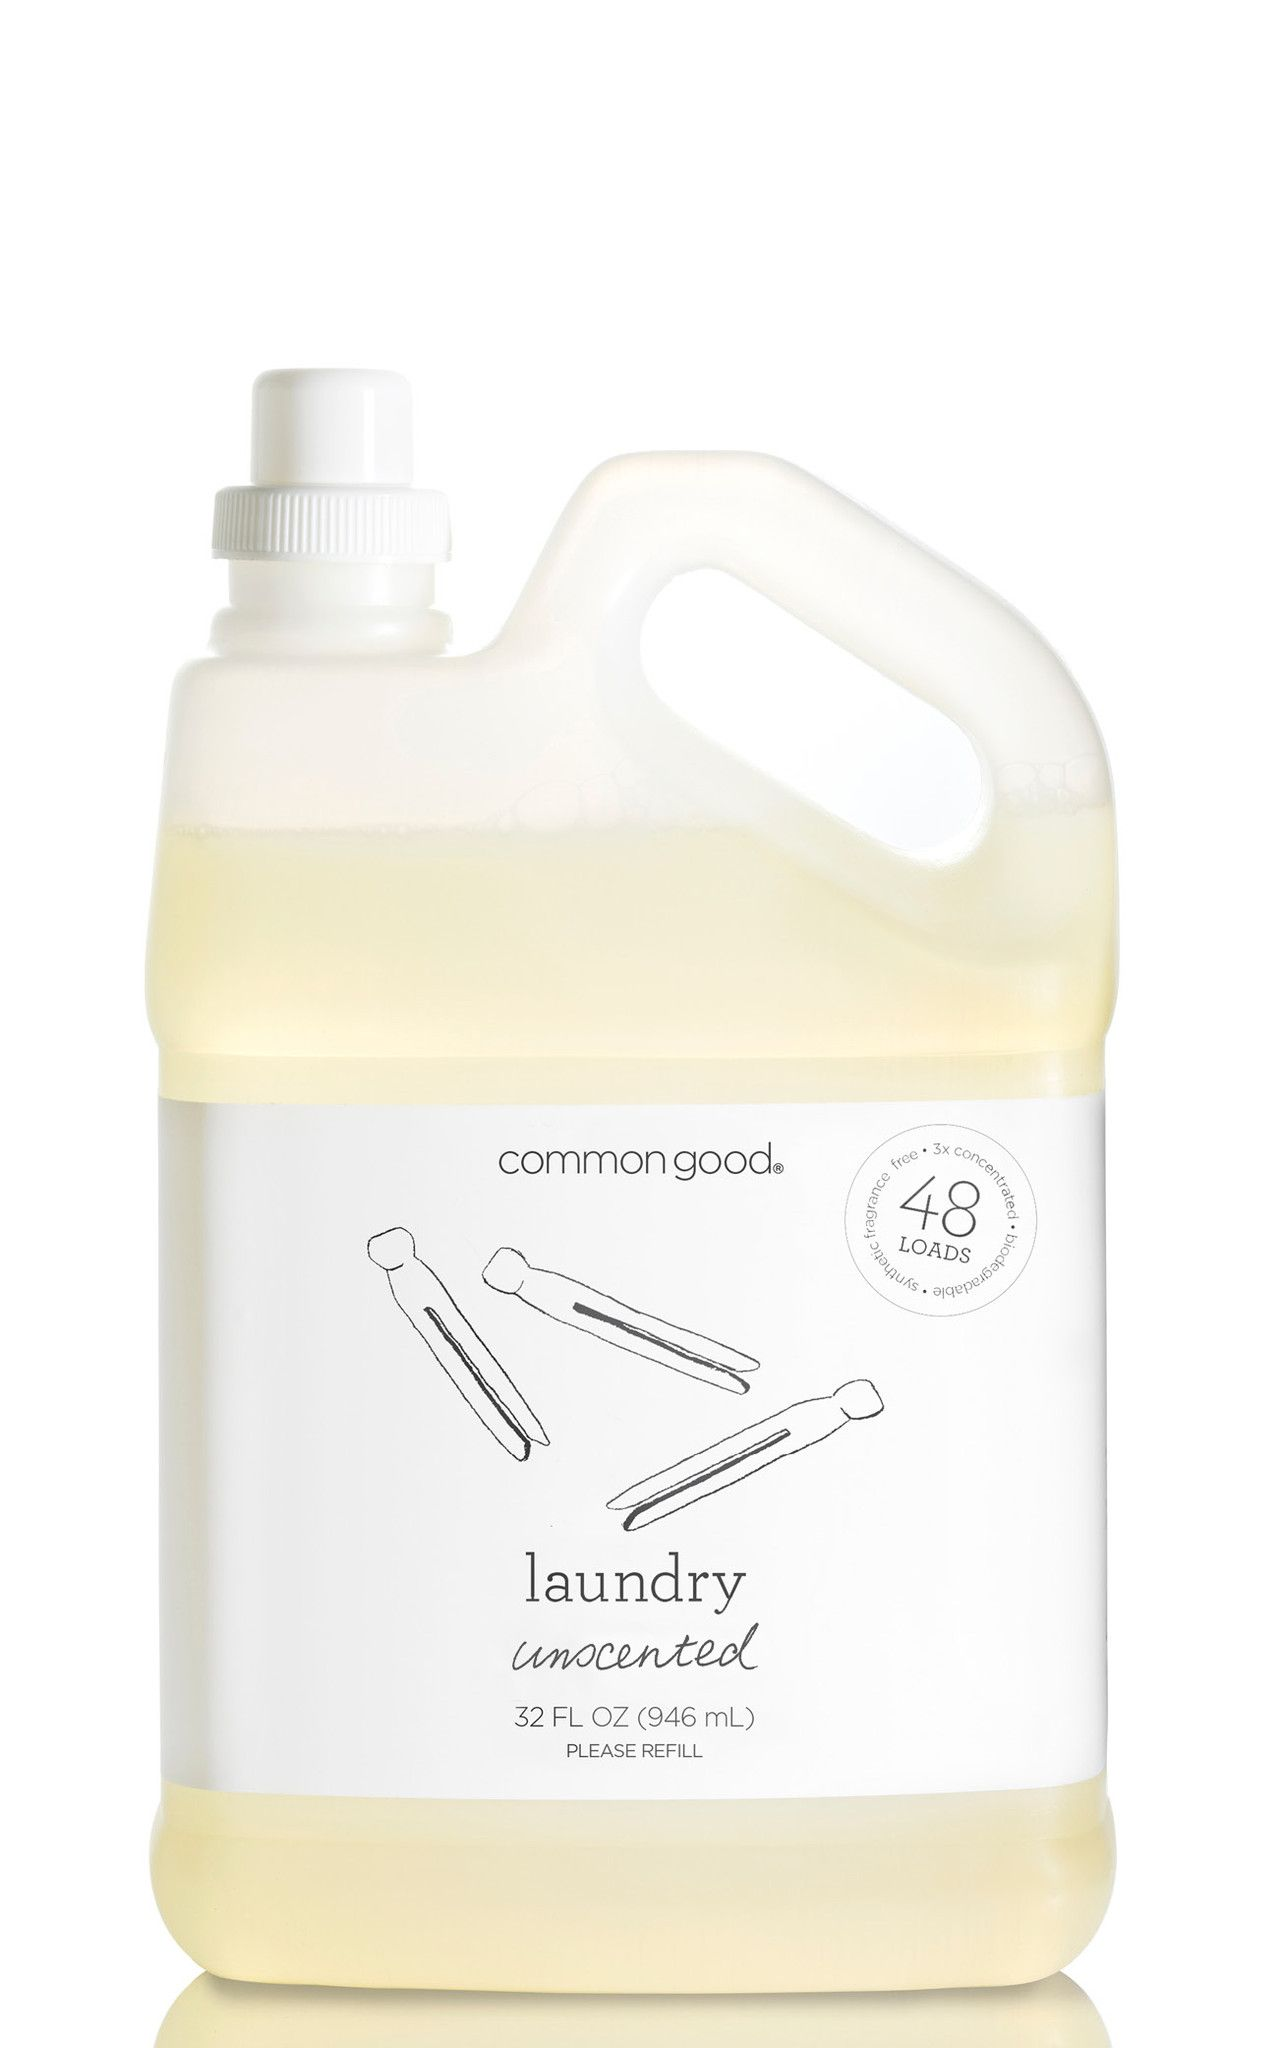 Common Good Laundry Detergent Natural Laundry Detergent Laundry